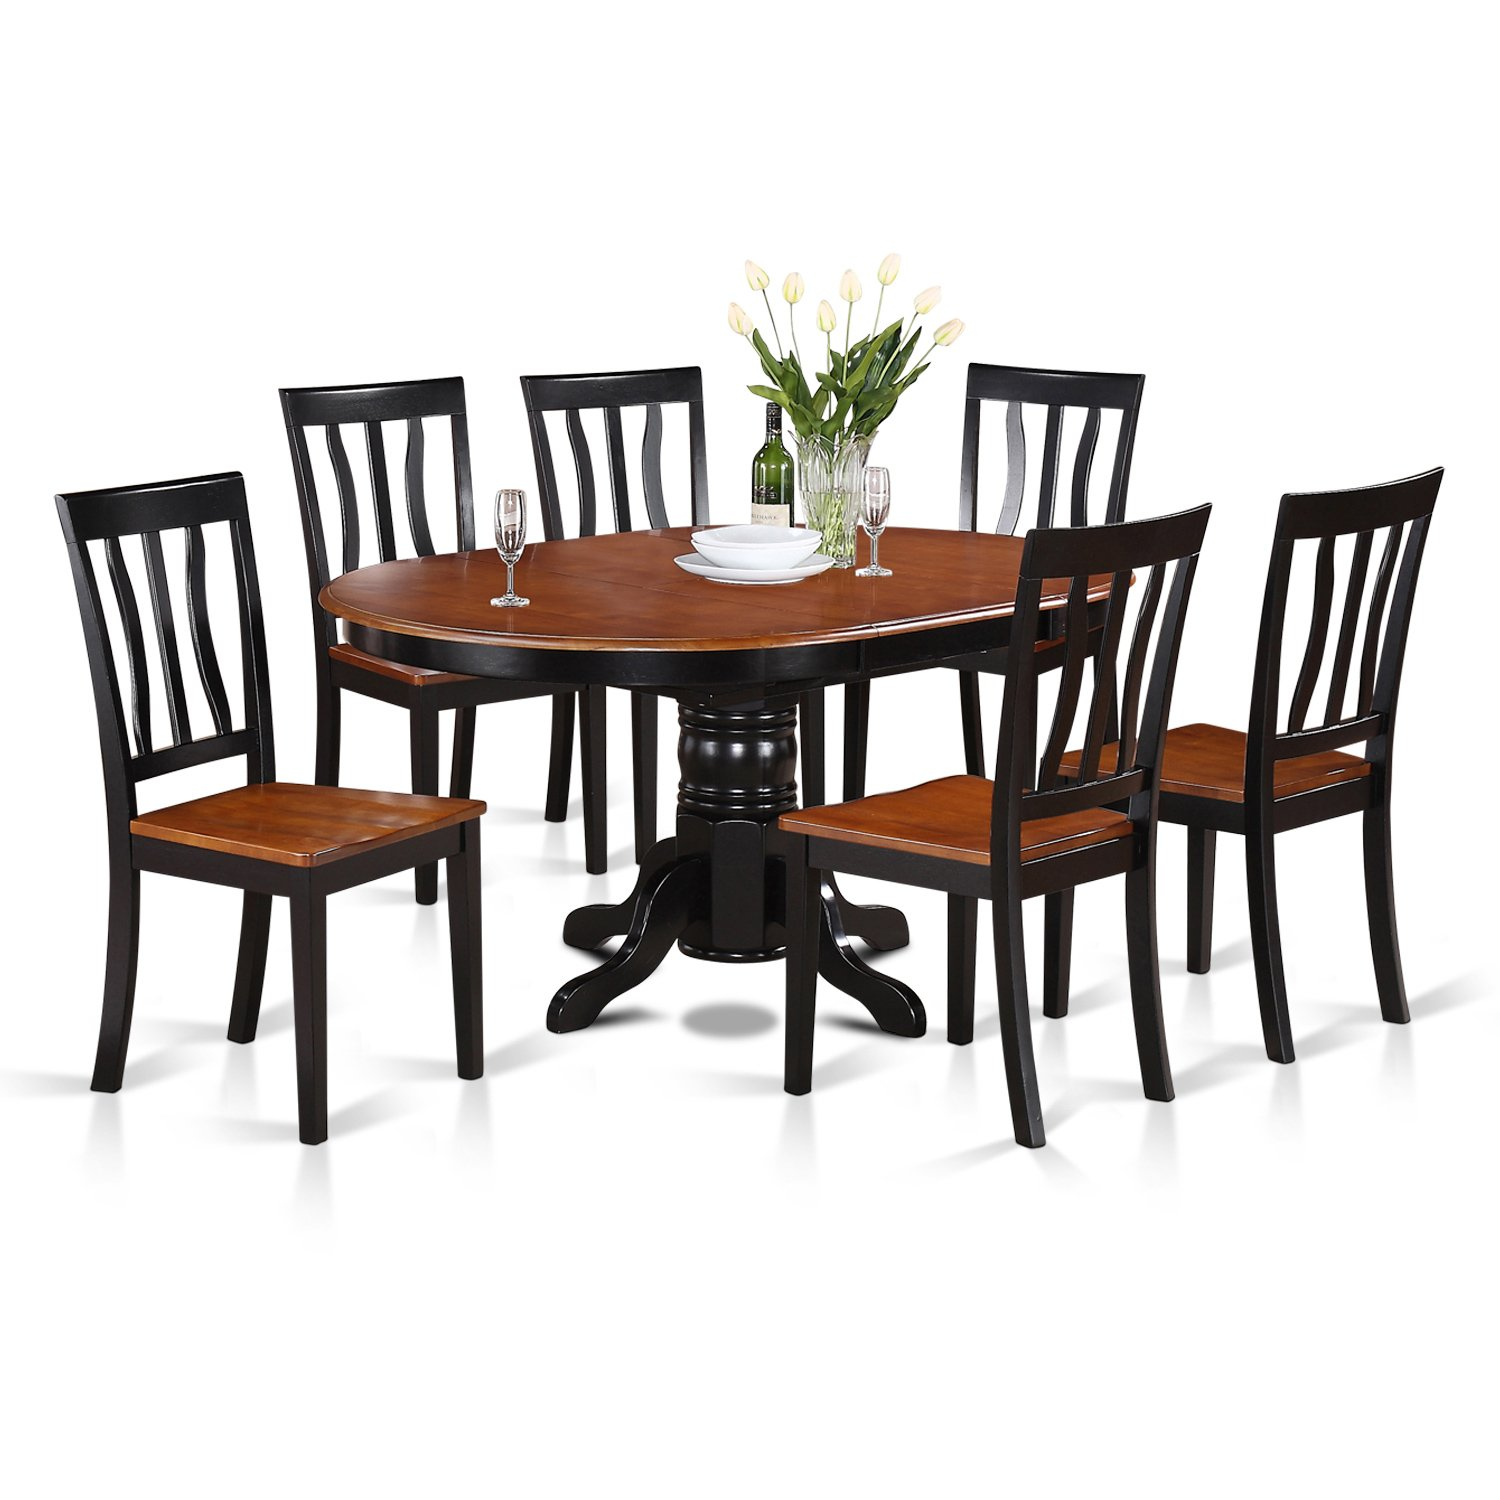 Amazoncom East West Furniture AVATBLKW Piece Dining Table - Oval dinner table